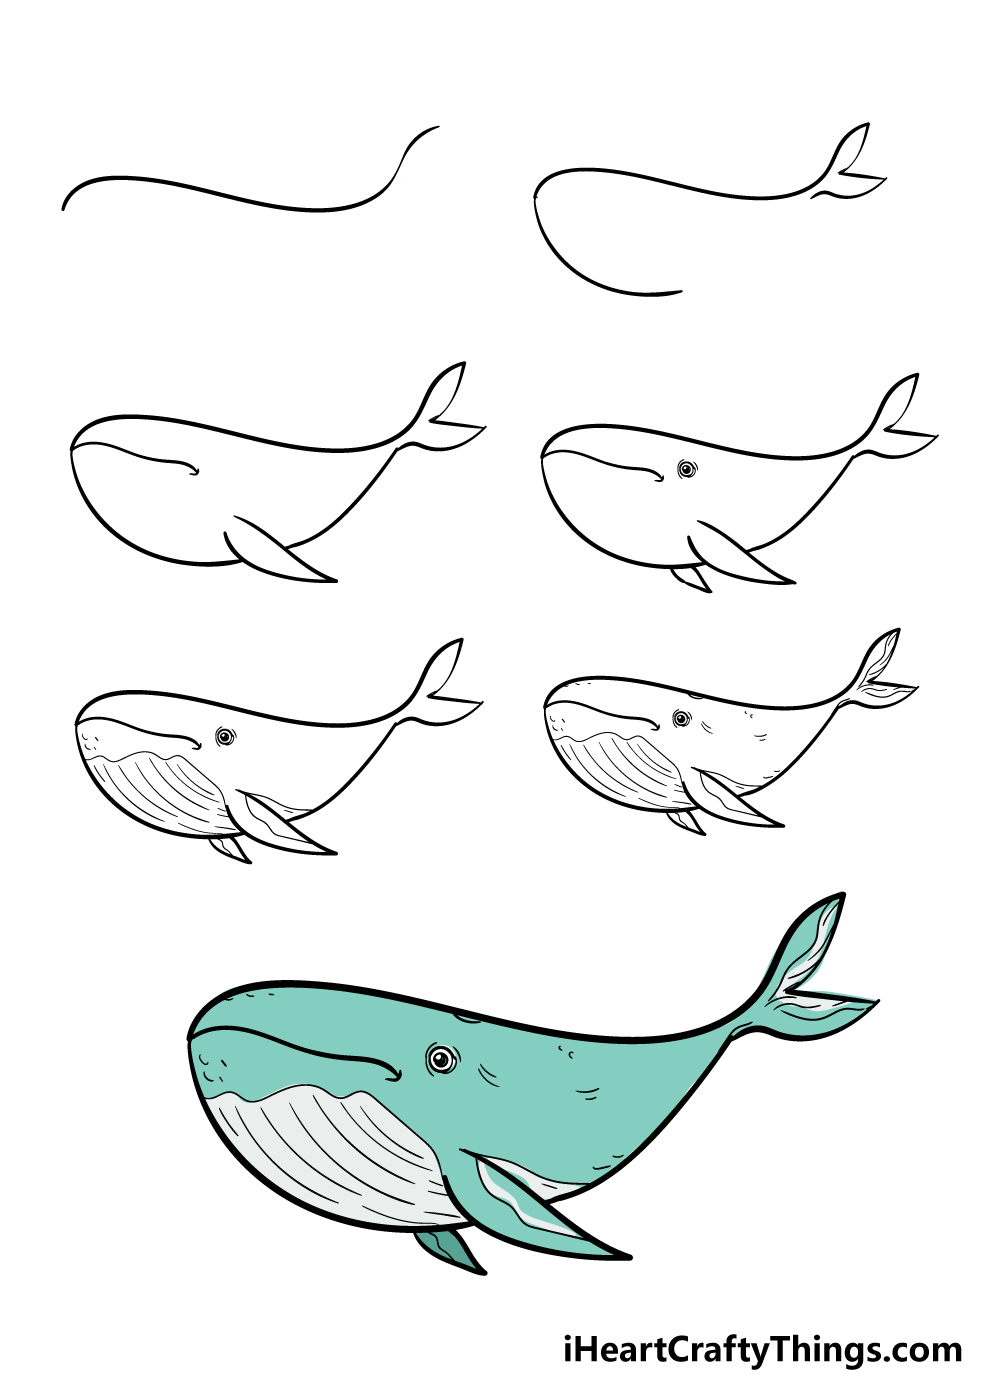 how to draw a whale in 7 steps